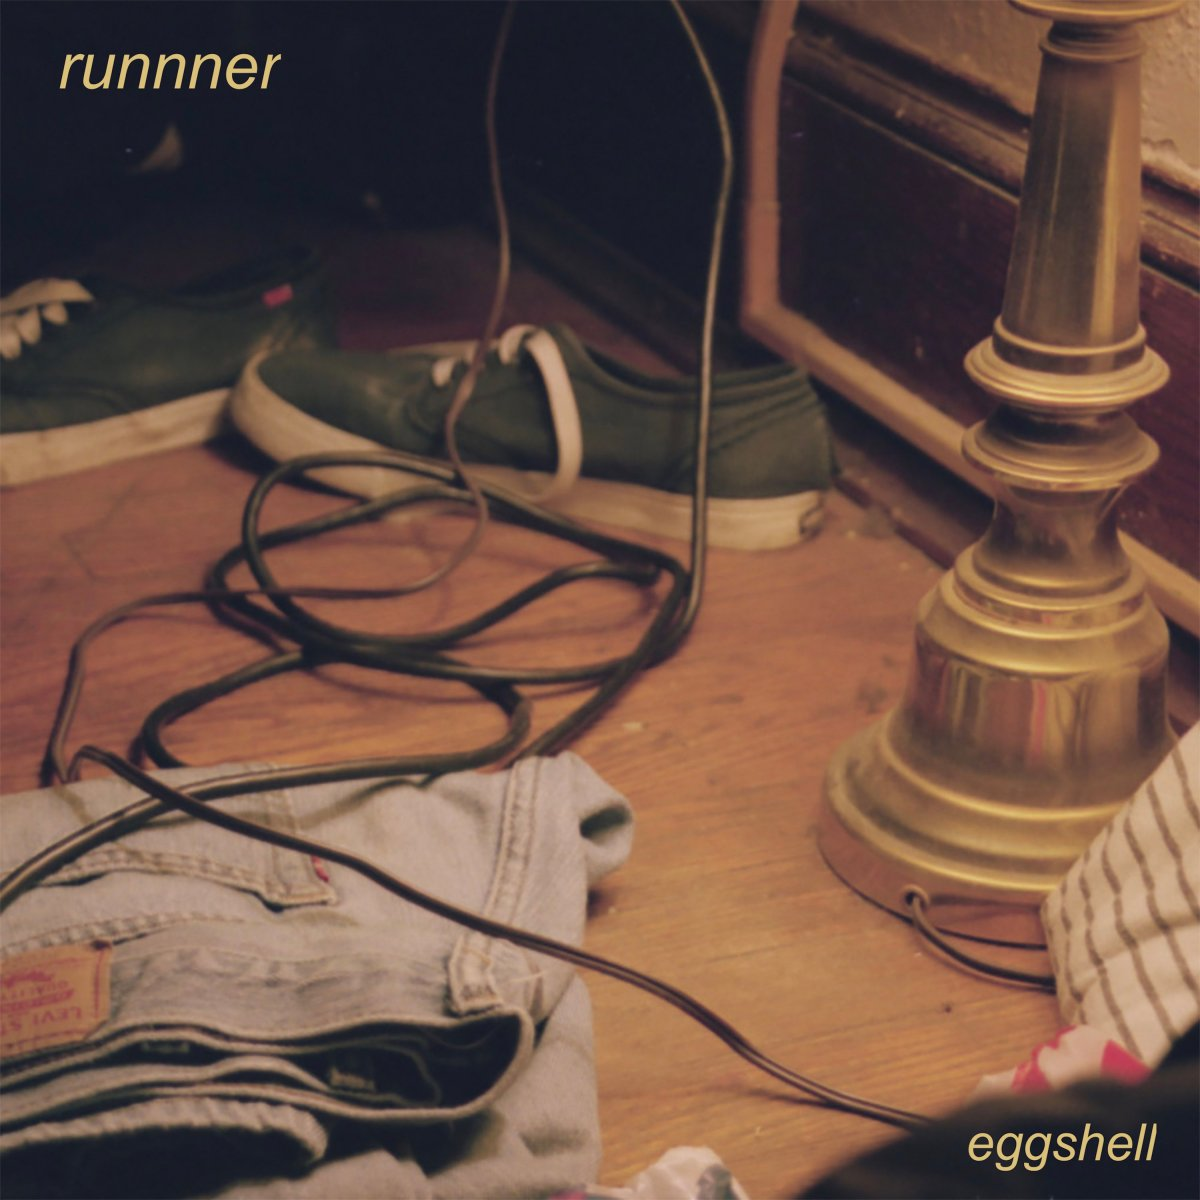 Runner's 'Eggshell' Is Fuzzy, Nostalgic Indie Rock